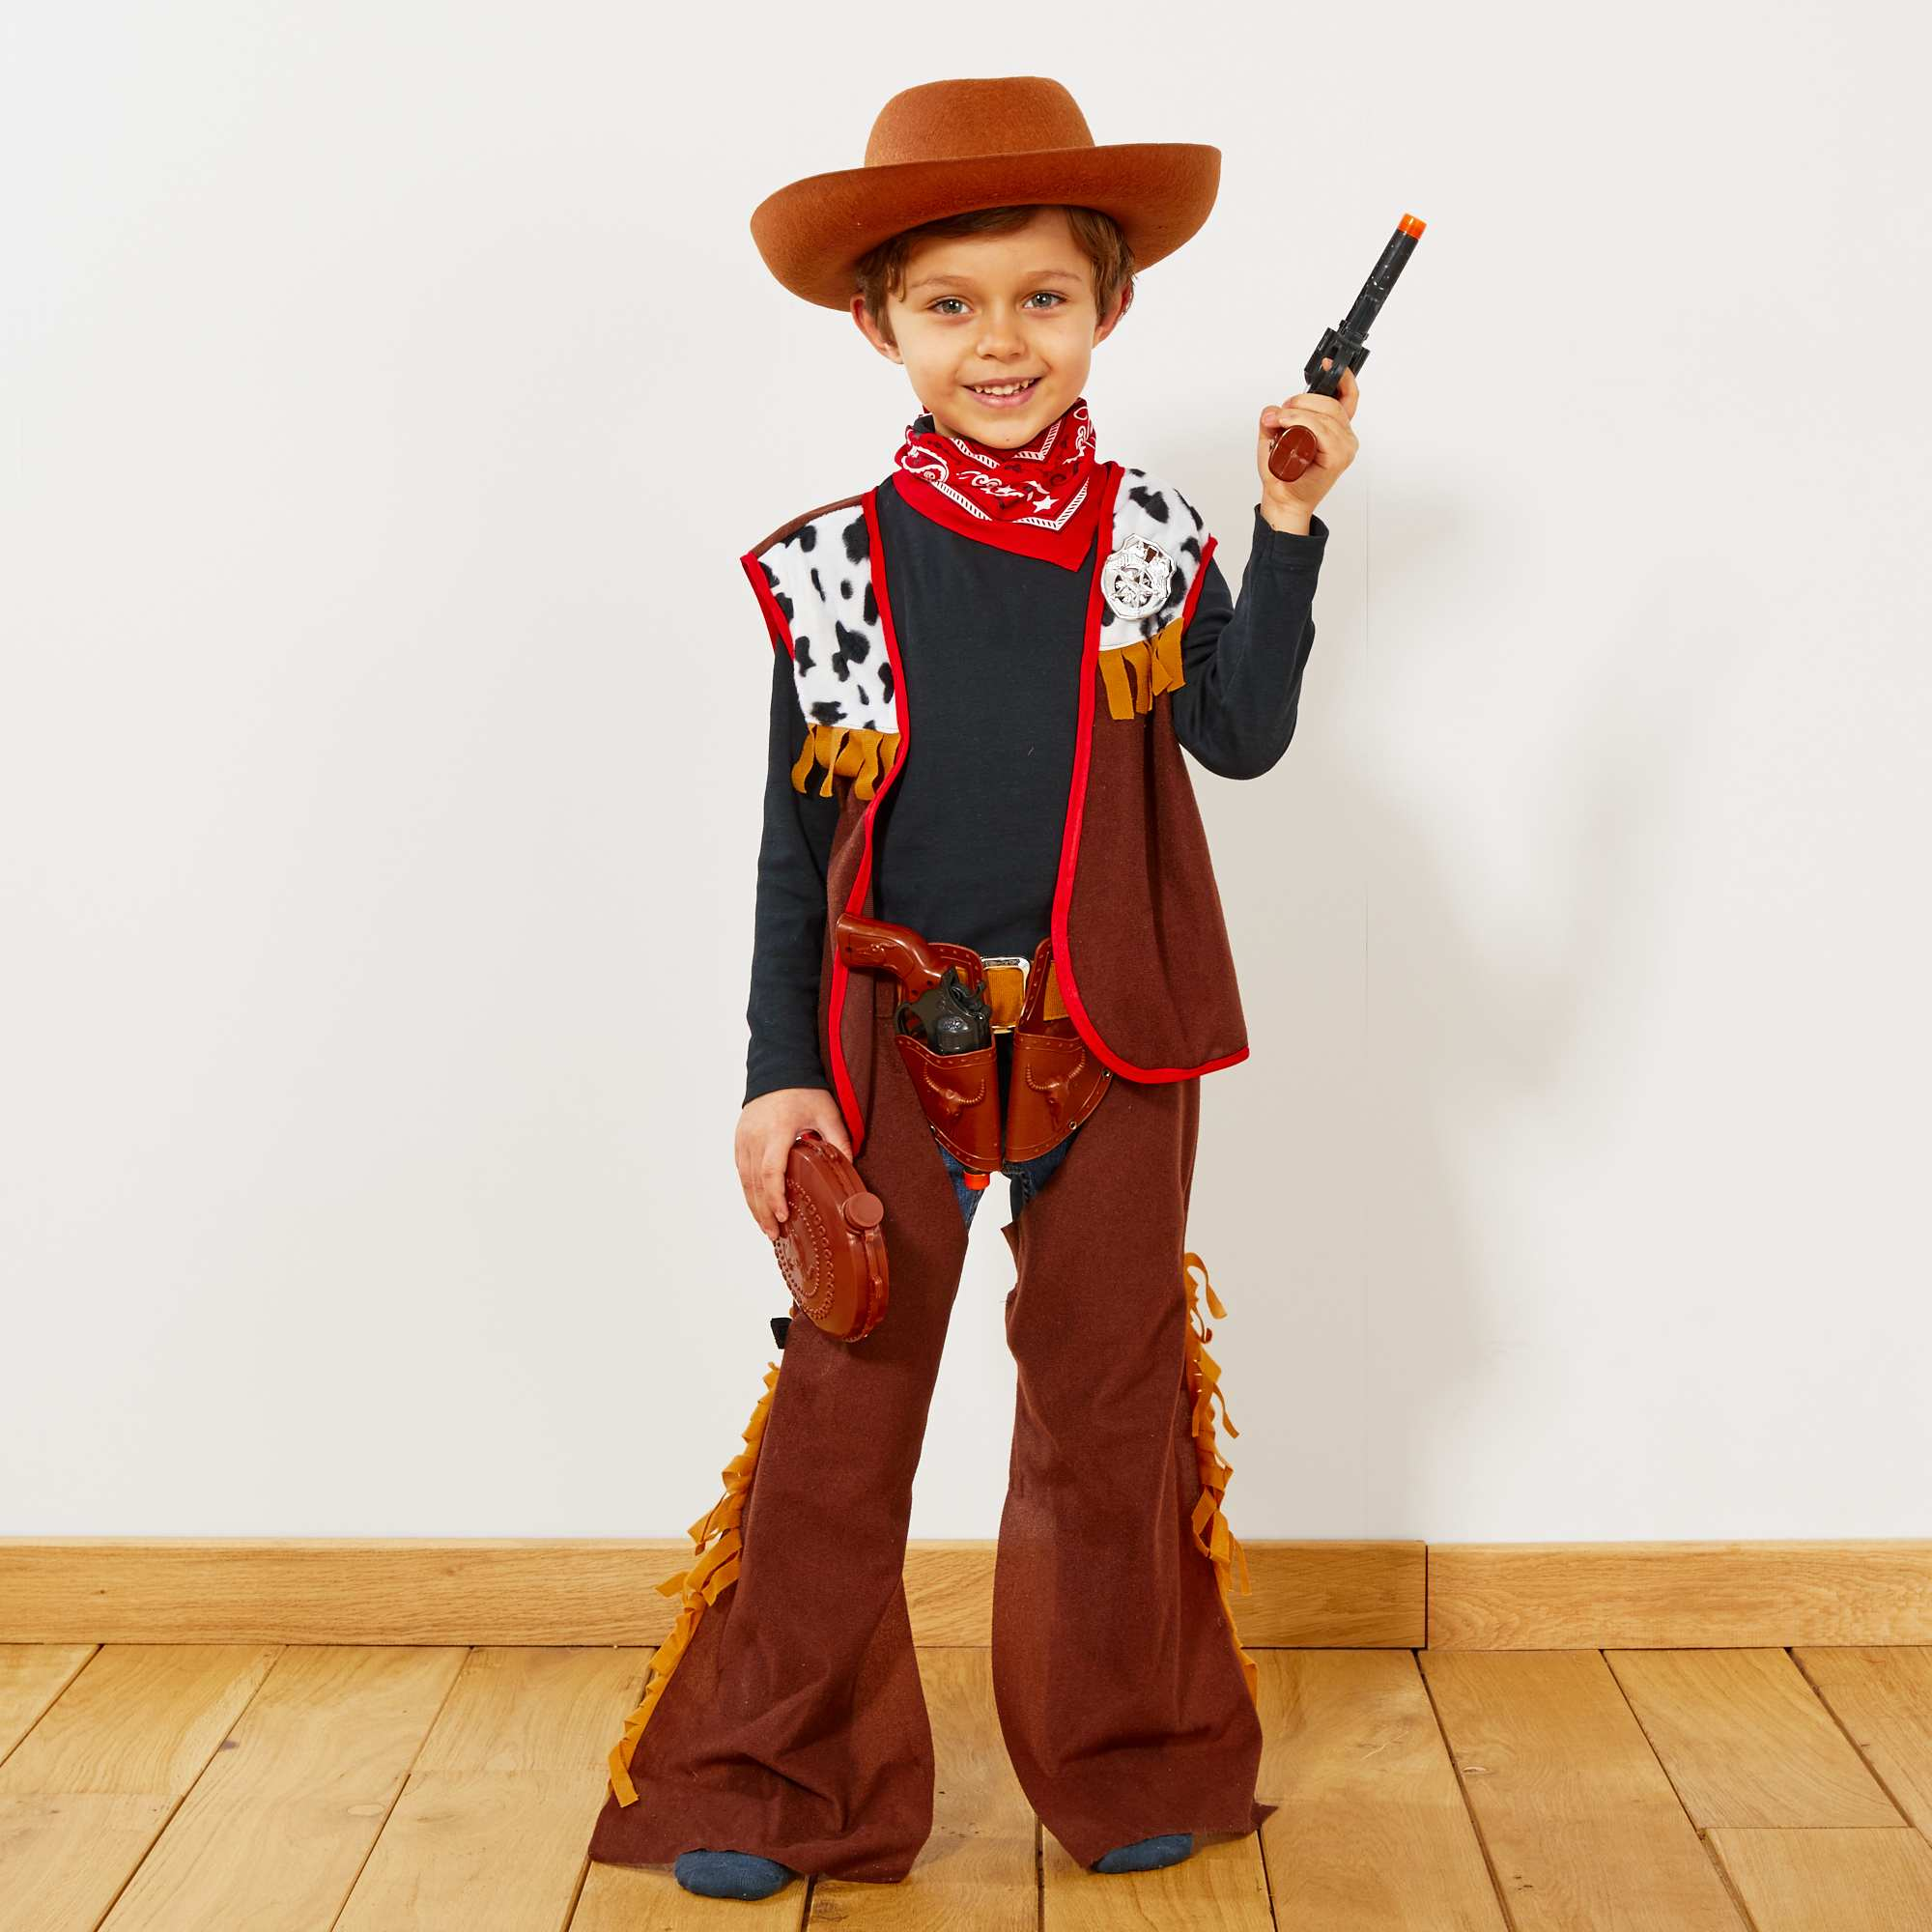 d guisement de cowboy enfant marron kiabi 22 00. Black Bedroom Furniture Sets. Home Design Ideas